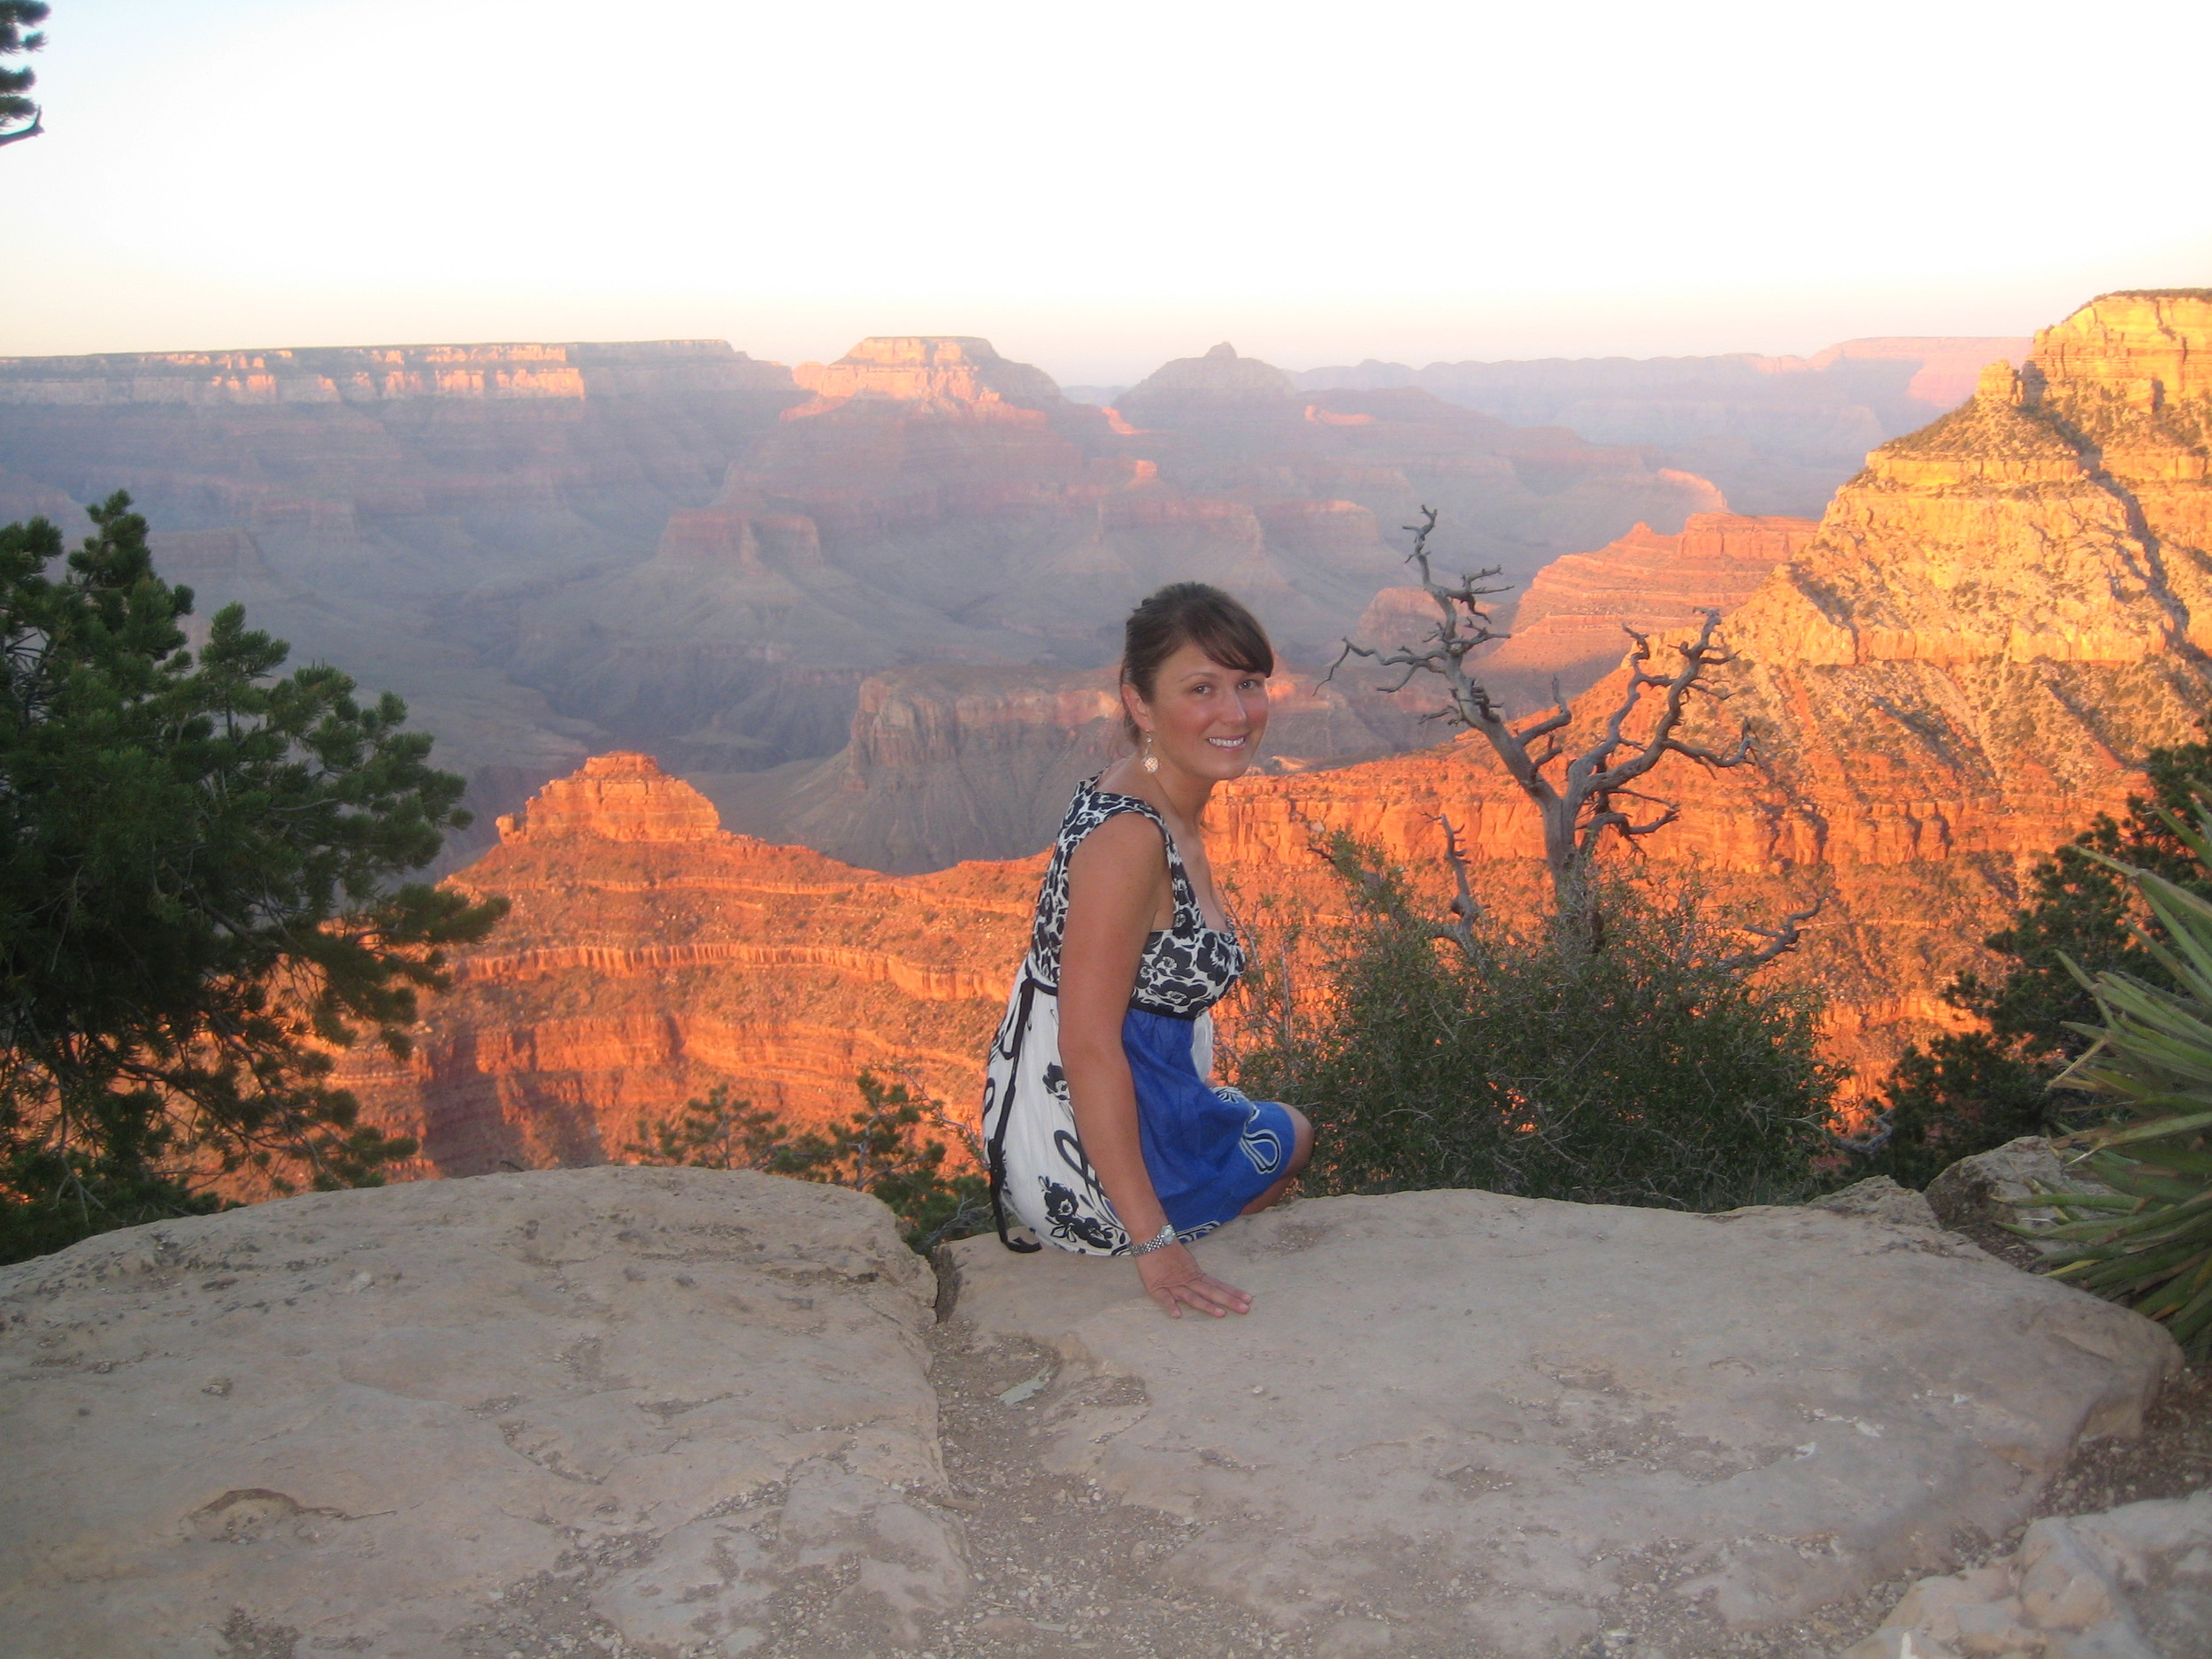 The Grand Canyon 2008